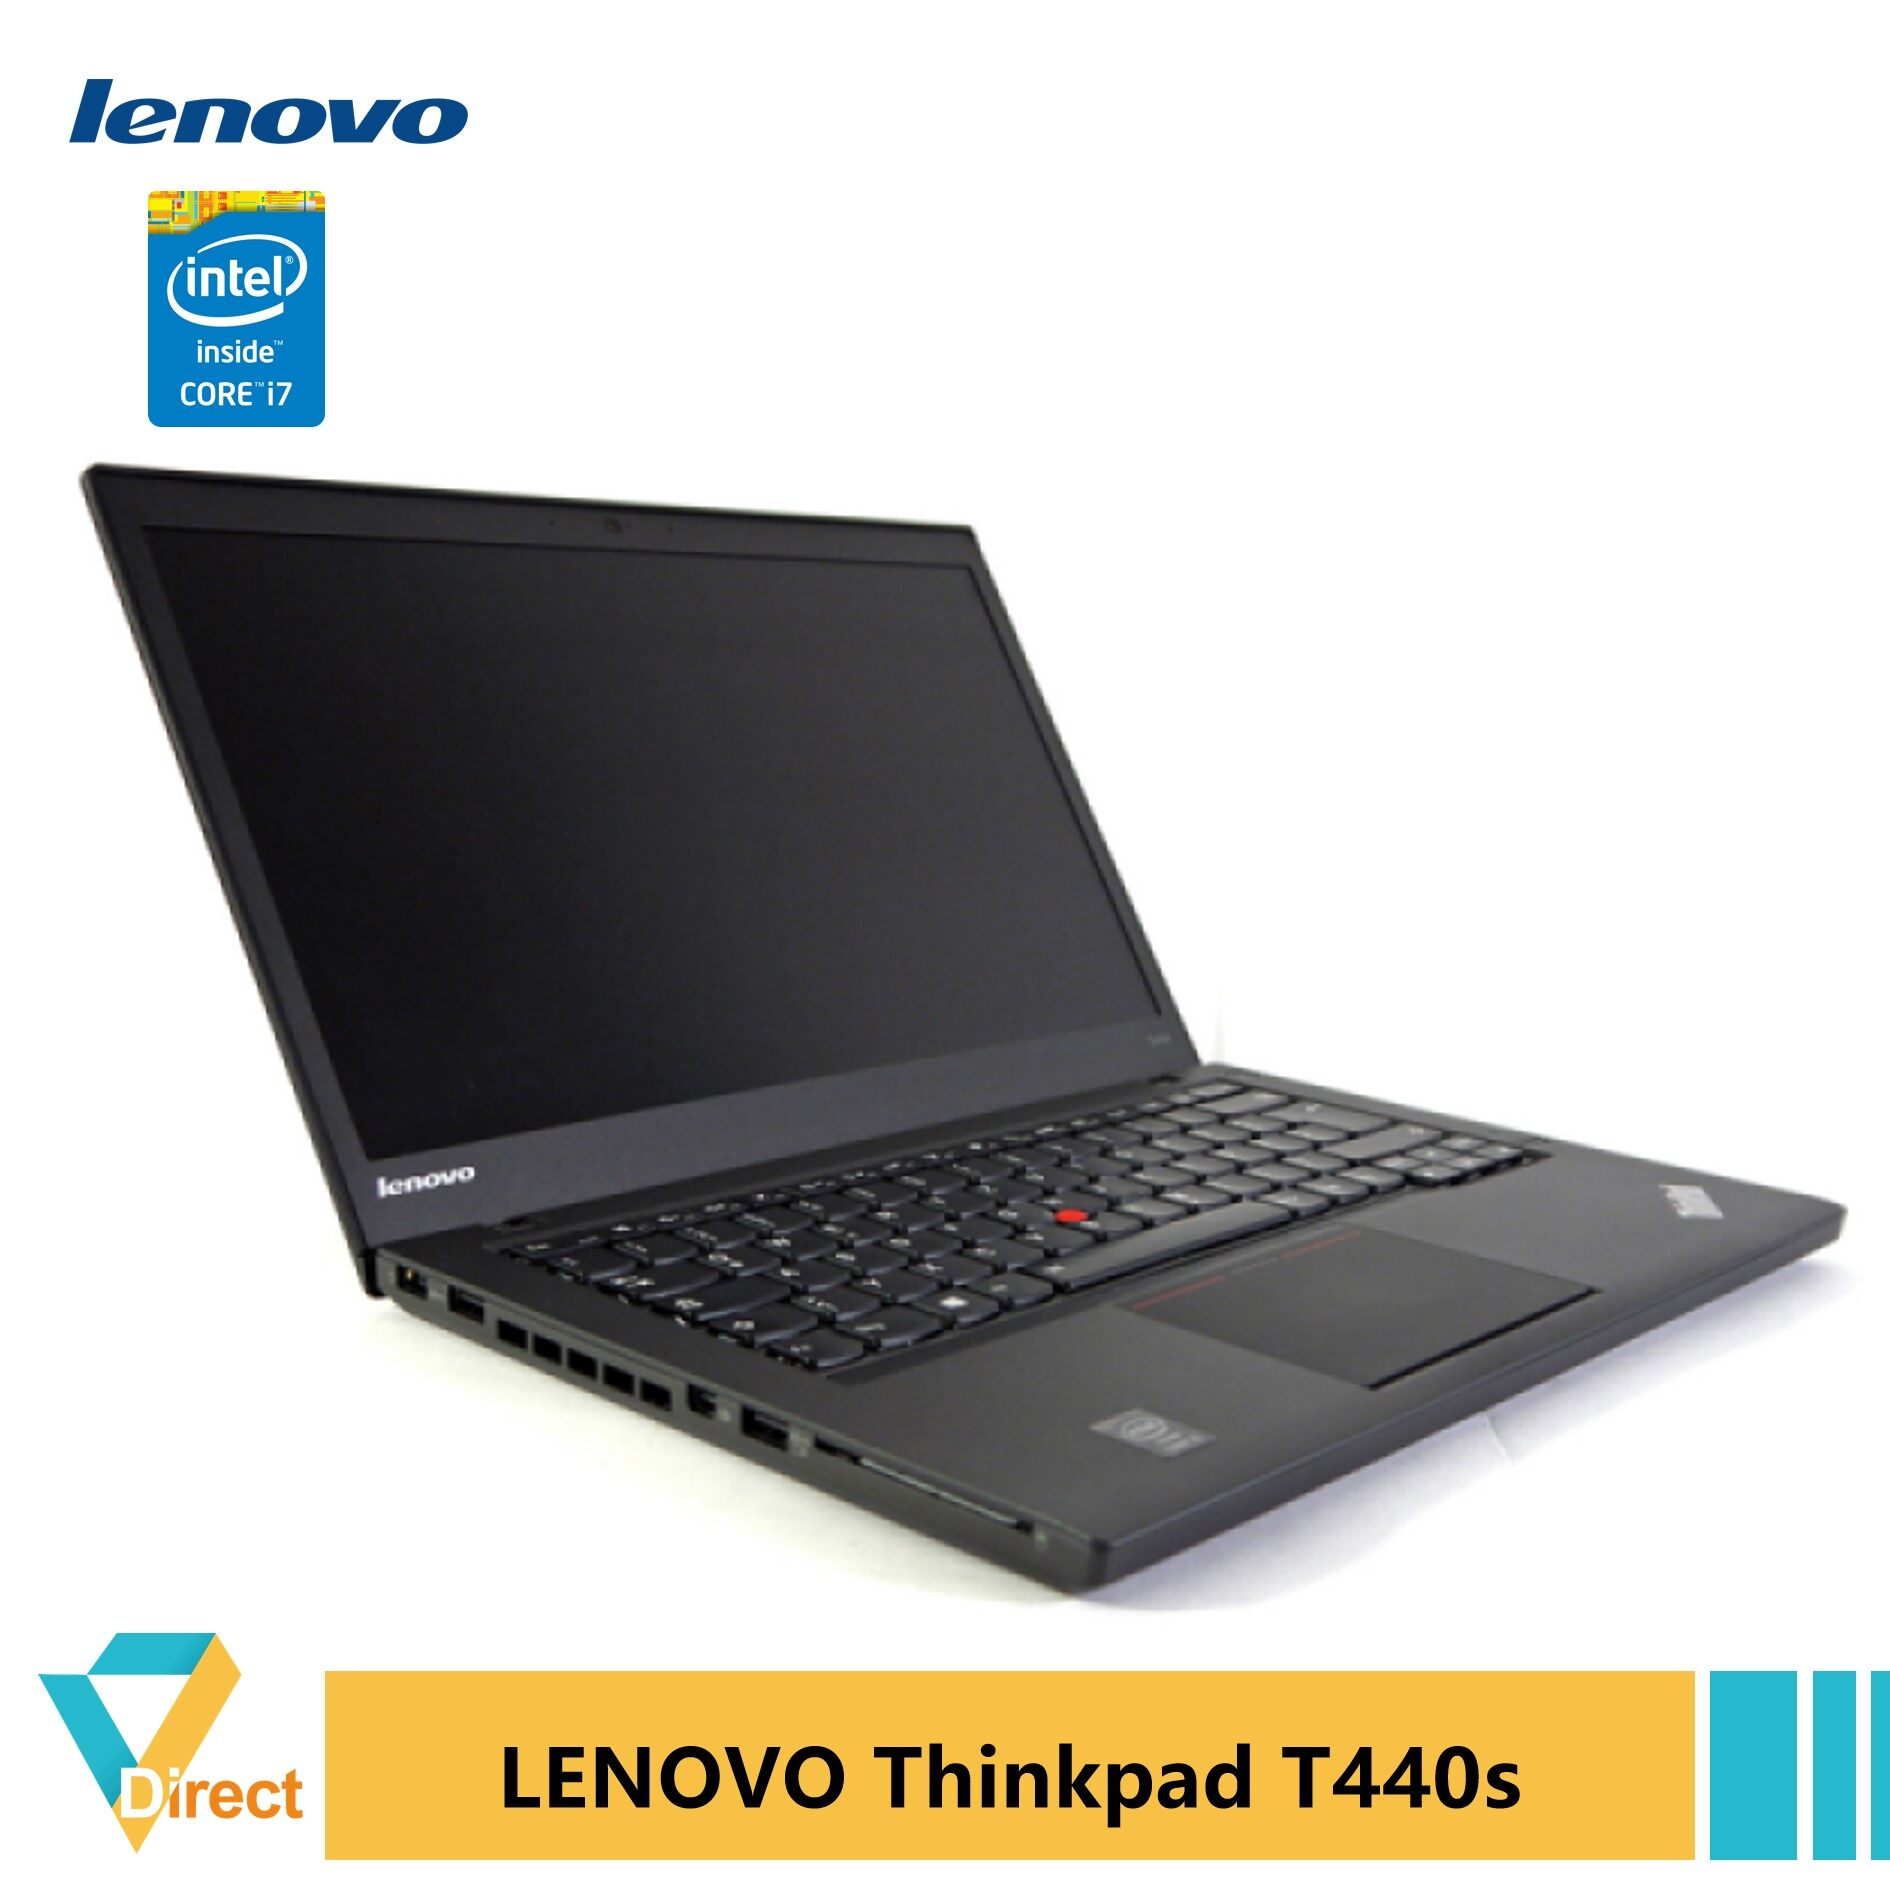 1.5kg Core i7 8GB RAM 256GB SSD Thinkpad T440s laptop PC Ultrabook fully refurbished Vs Elitebook 800 Latitude E7440 E7240 E6440 Malaysia